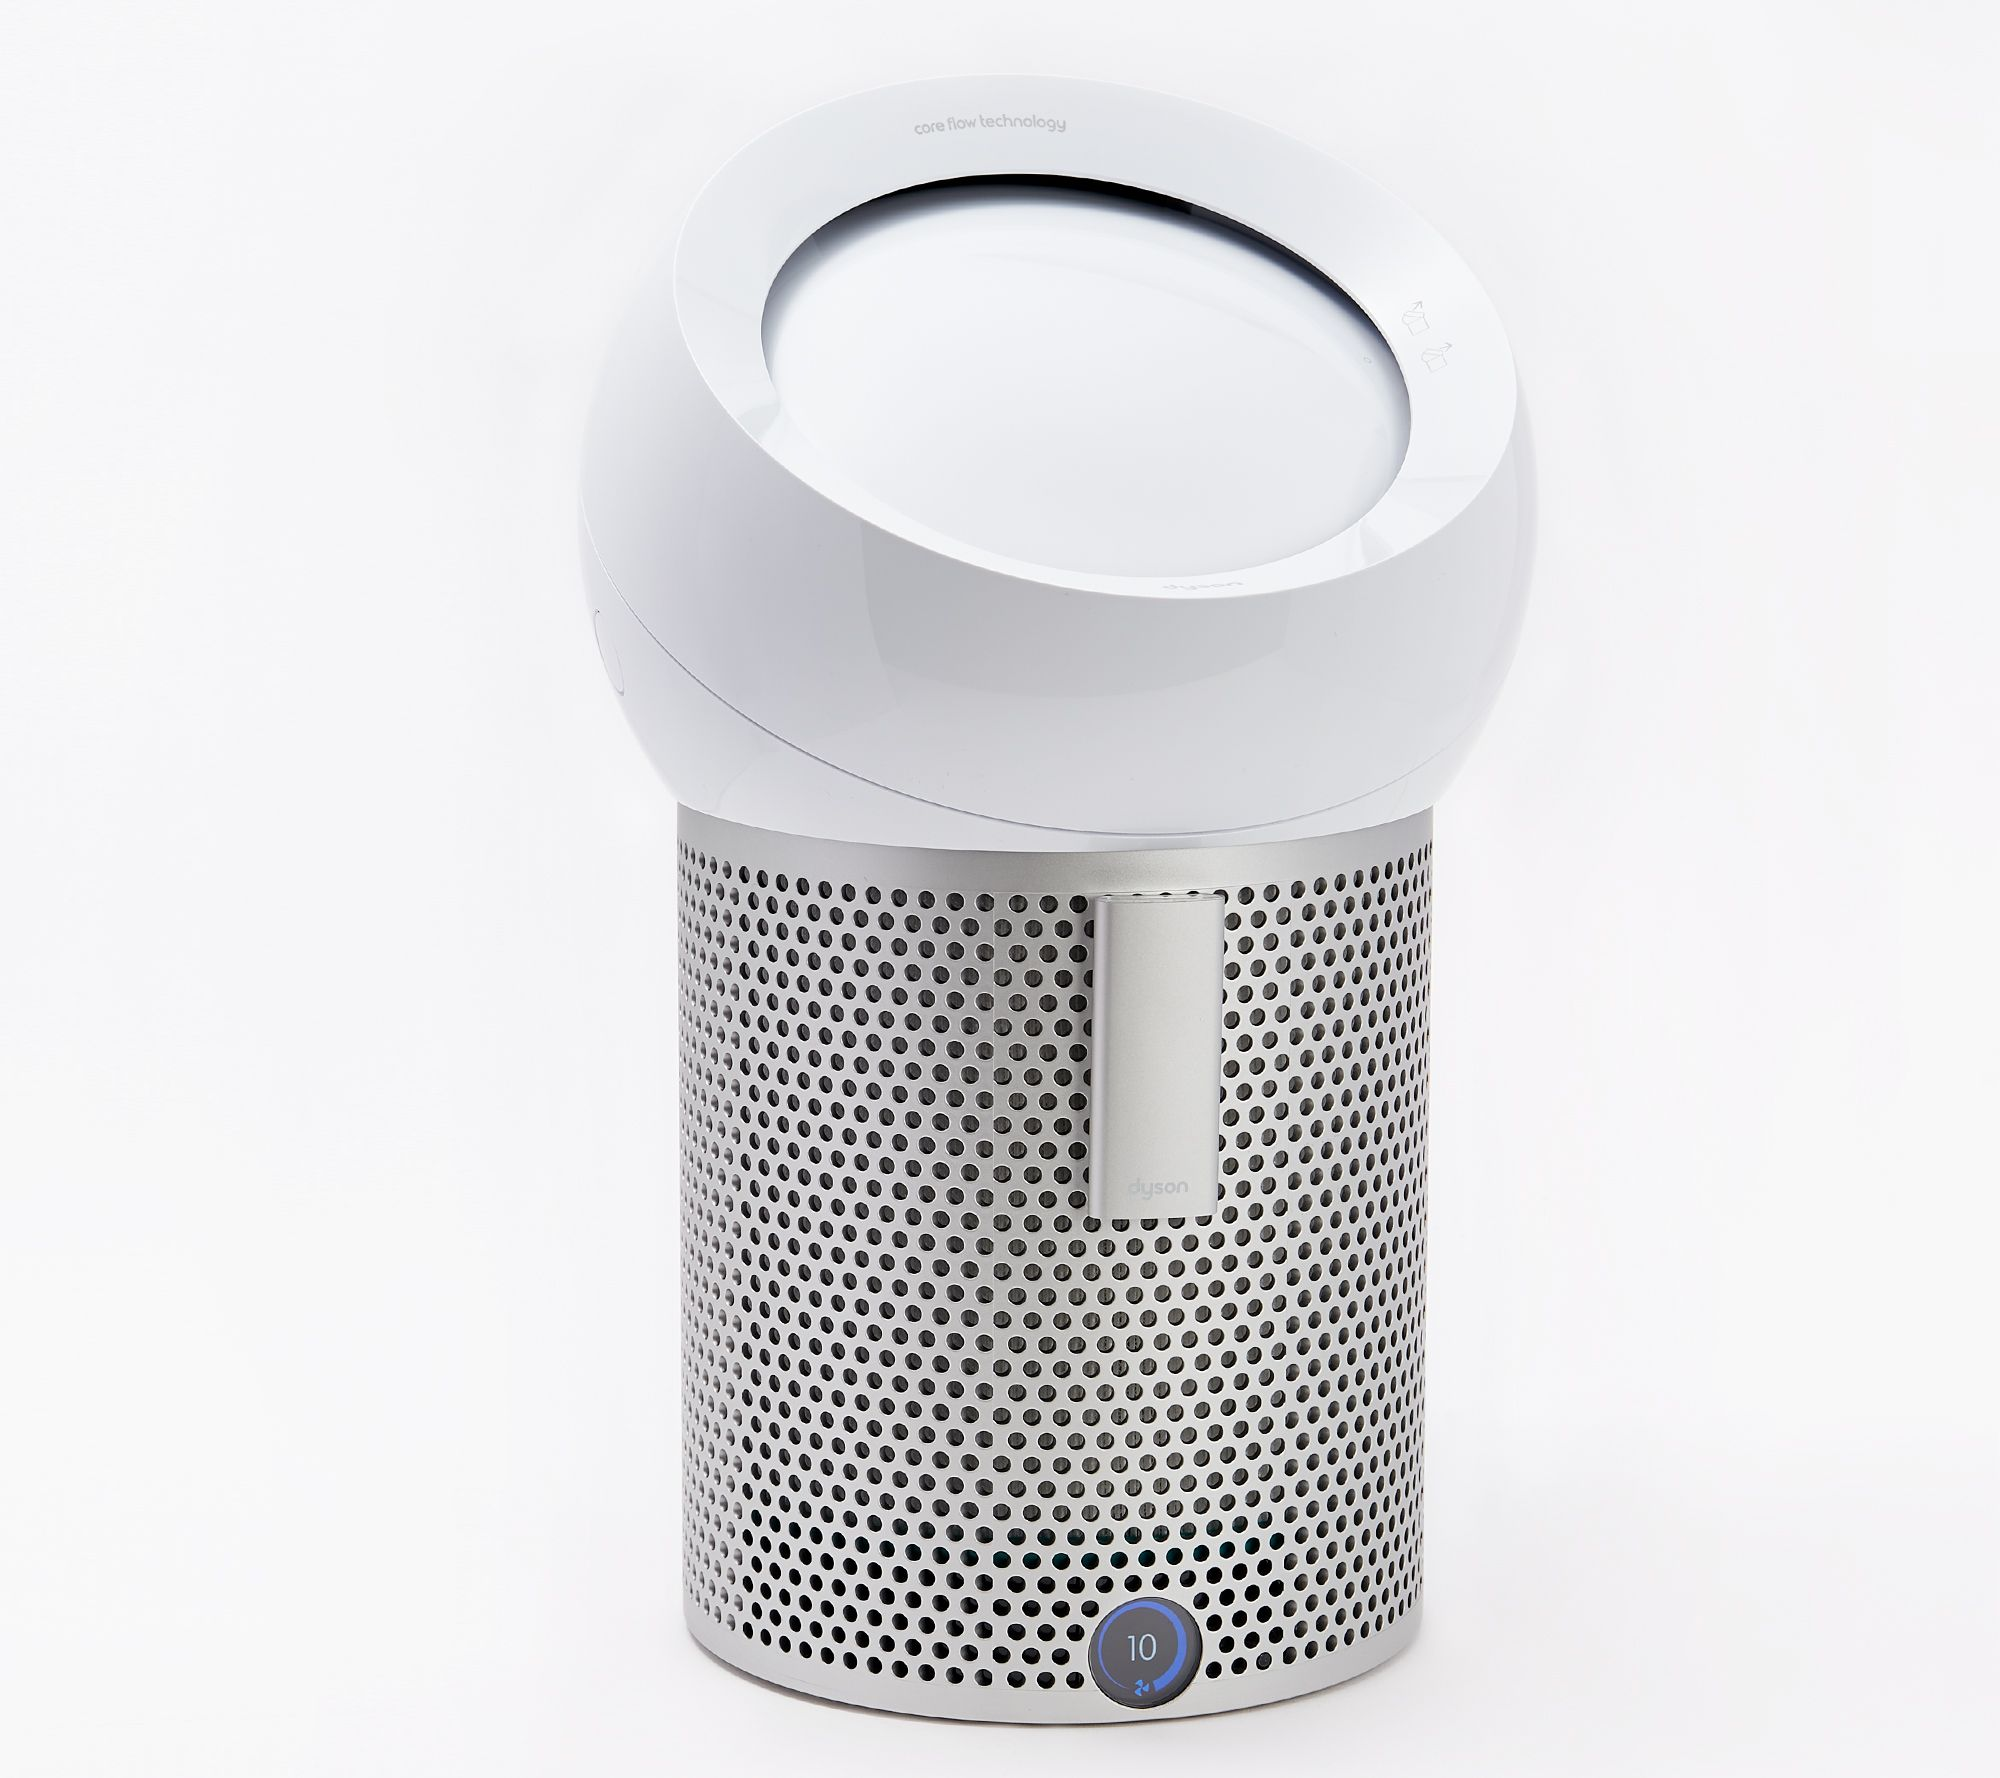 Dyson Bp01 Pure Cool Me Personal Fan & Air Purifier by Dyson